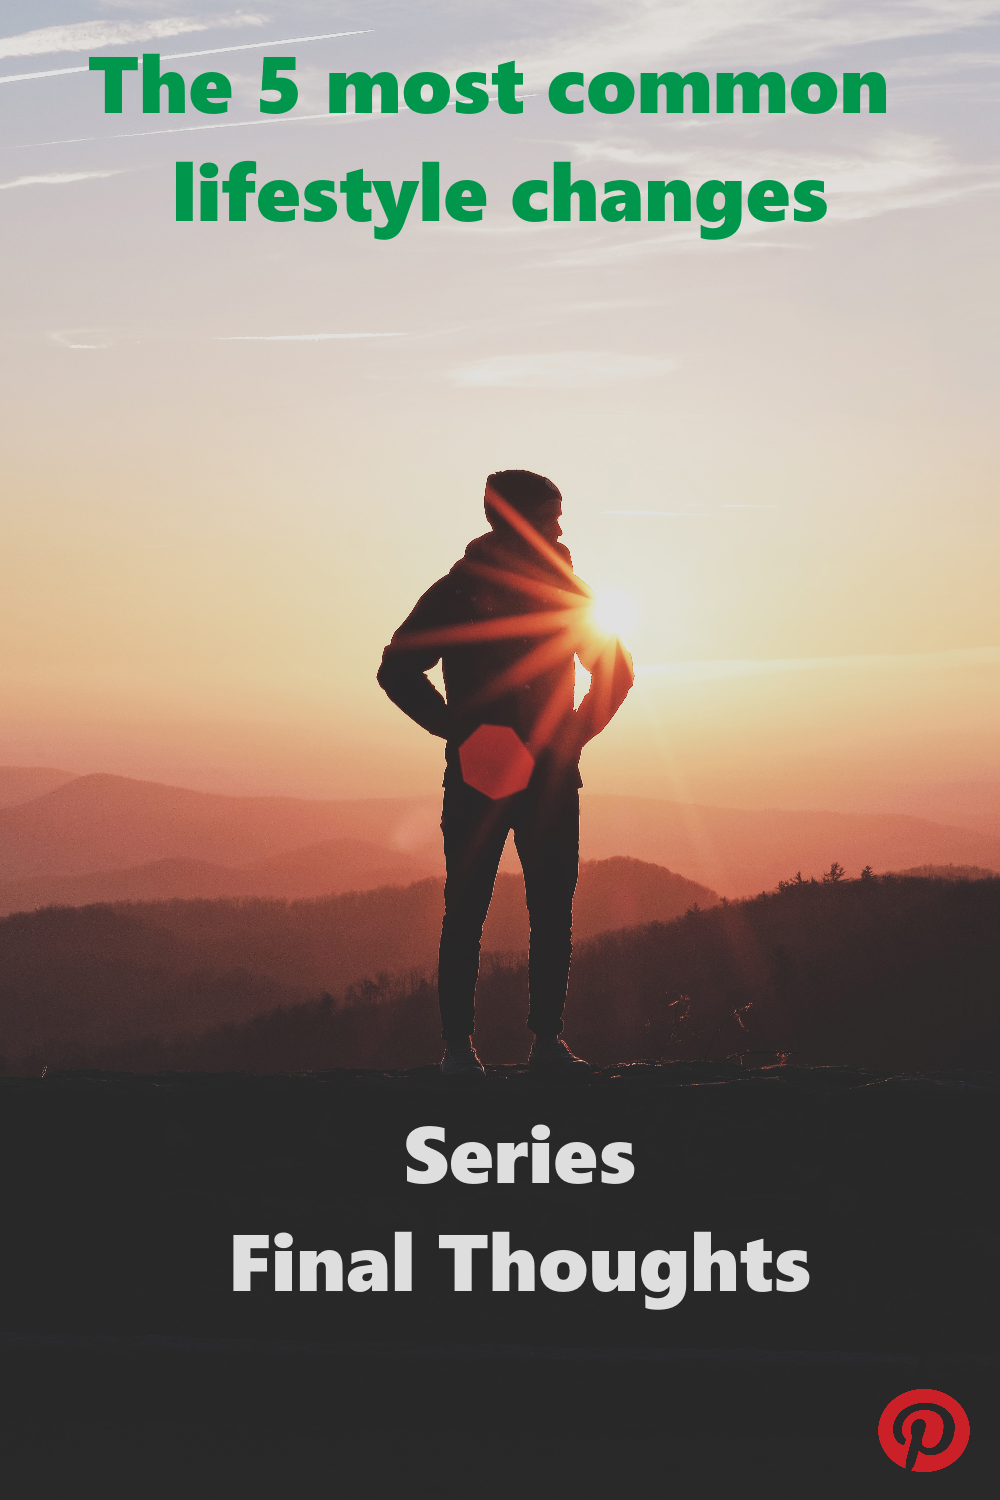 The 5 most common lifestyle changes - Series Final Thoughts